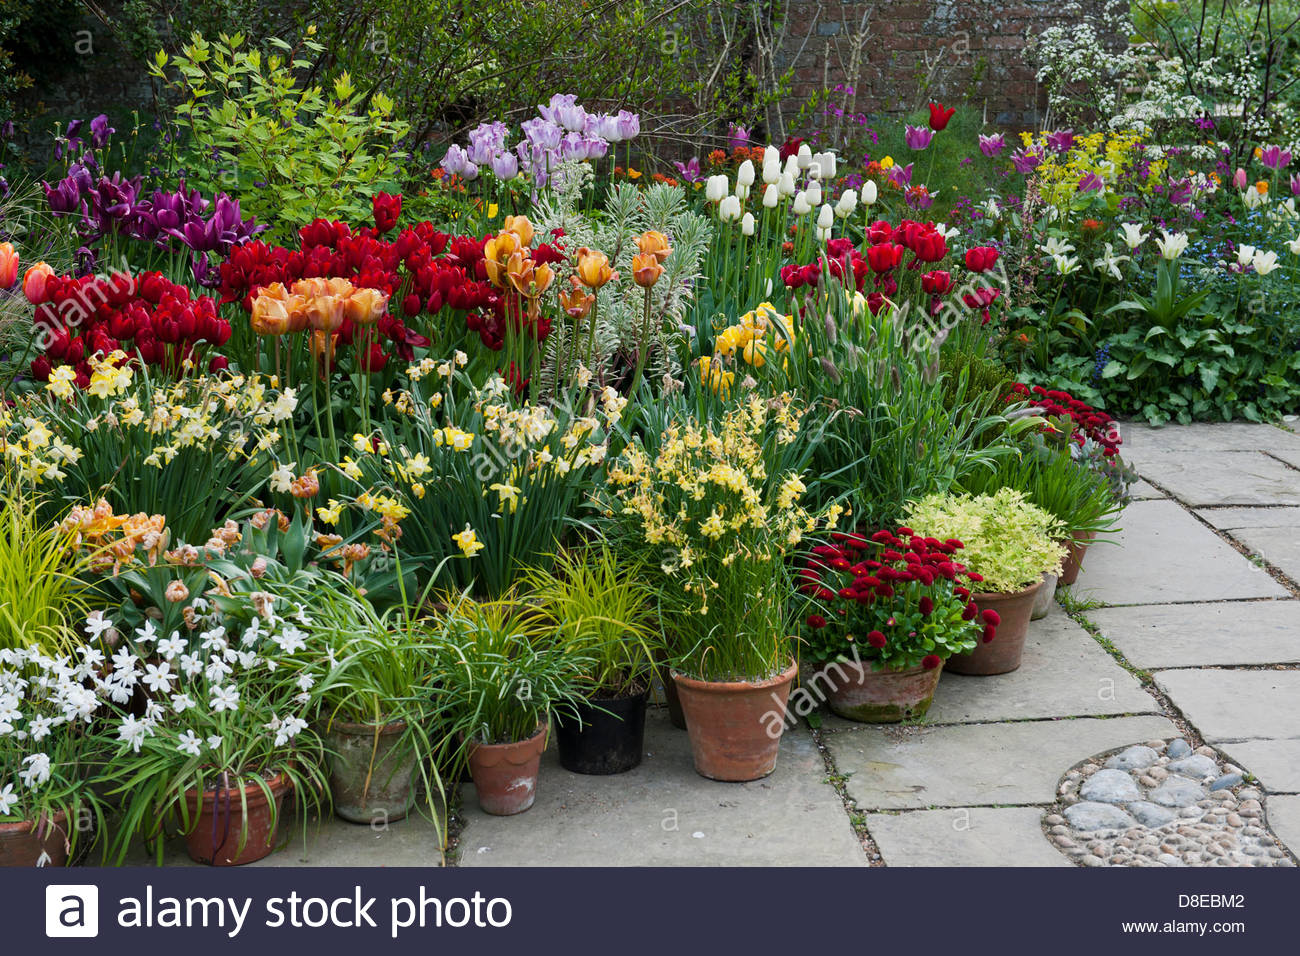 Stock Photo   Mixed Tulips Daffodils Perennial Group Containers Pots Patio  Colorful Colourful Display Great Dixter East Sussex England